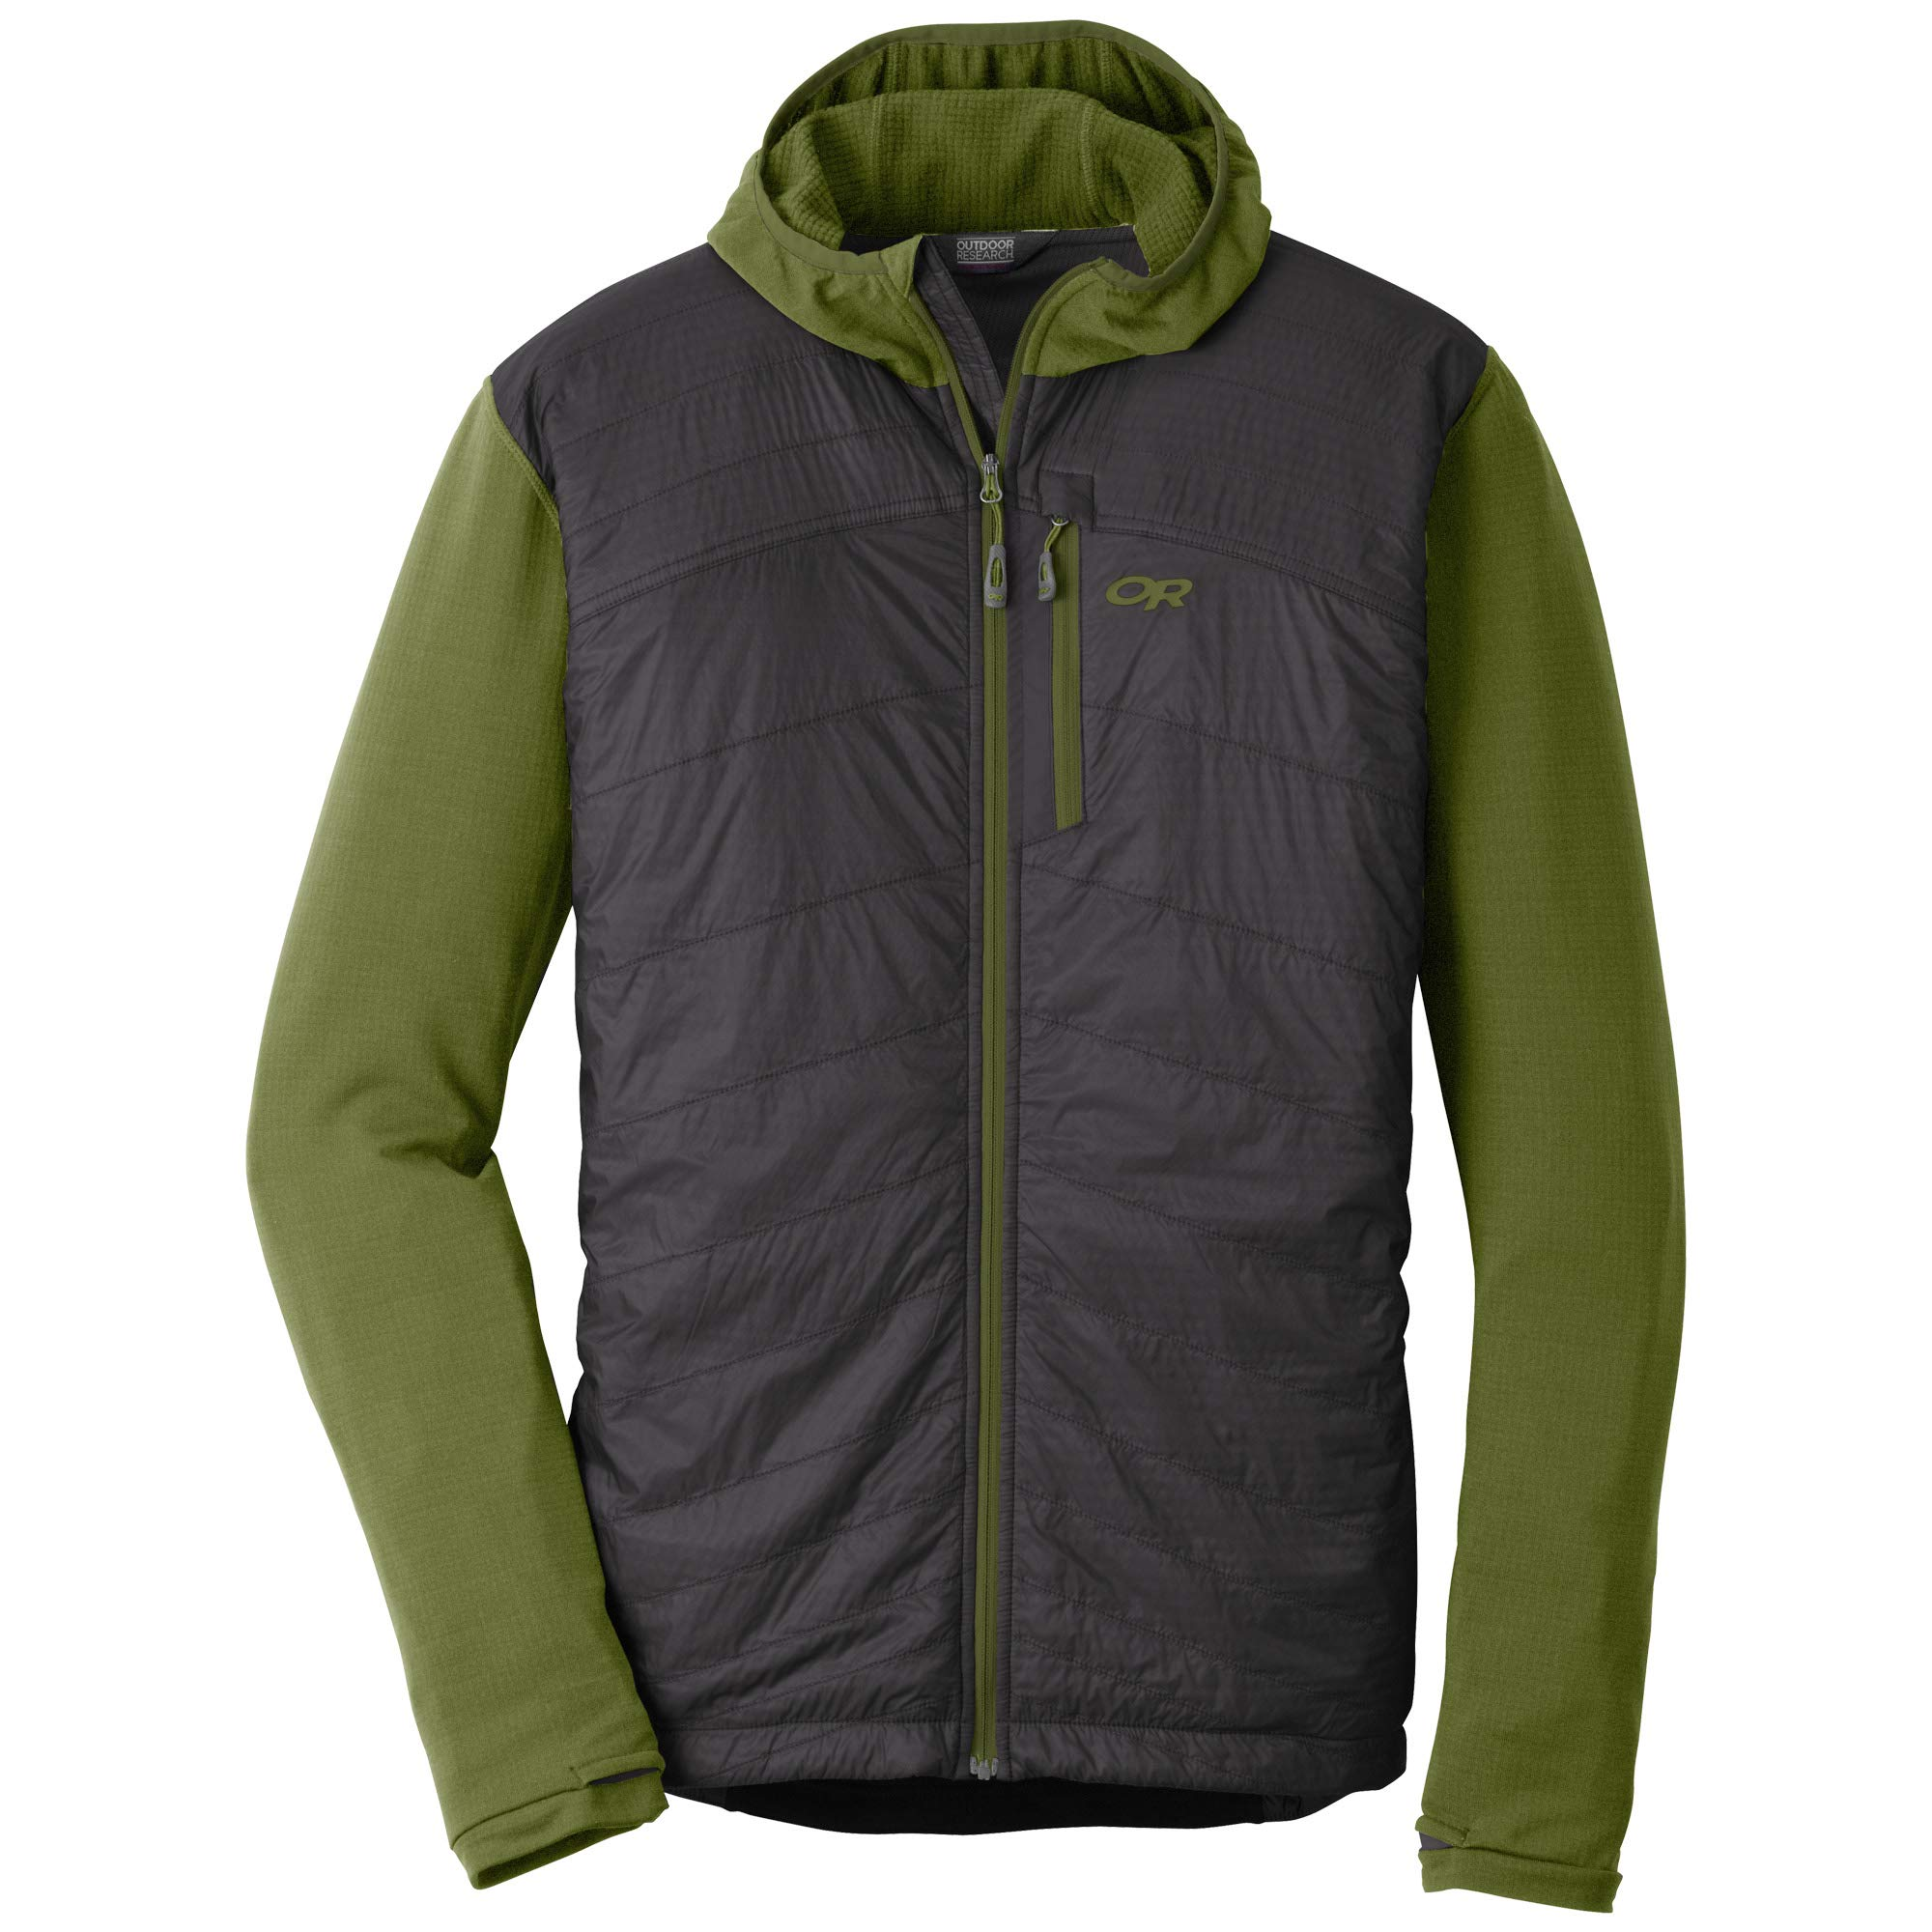 Outdoor Research Men's Deviator Hoody, Seaweed/Storm, Small